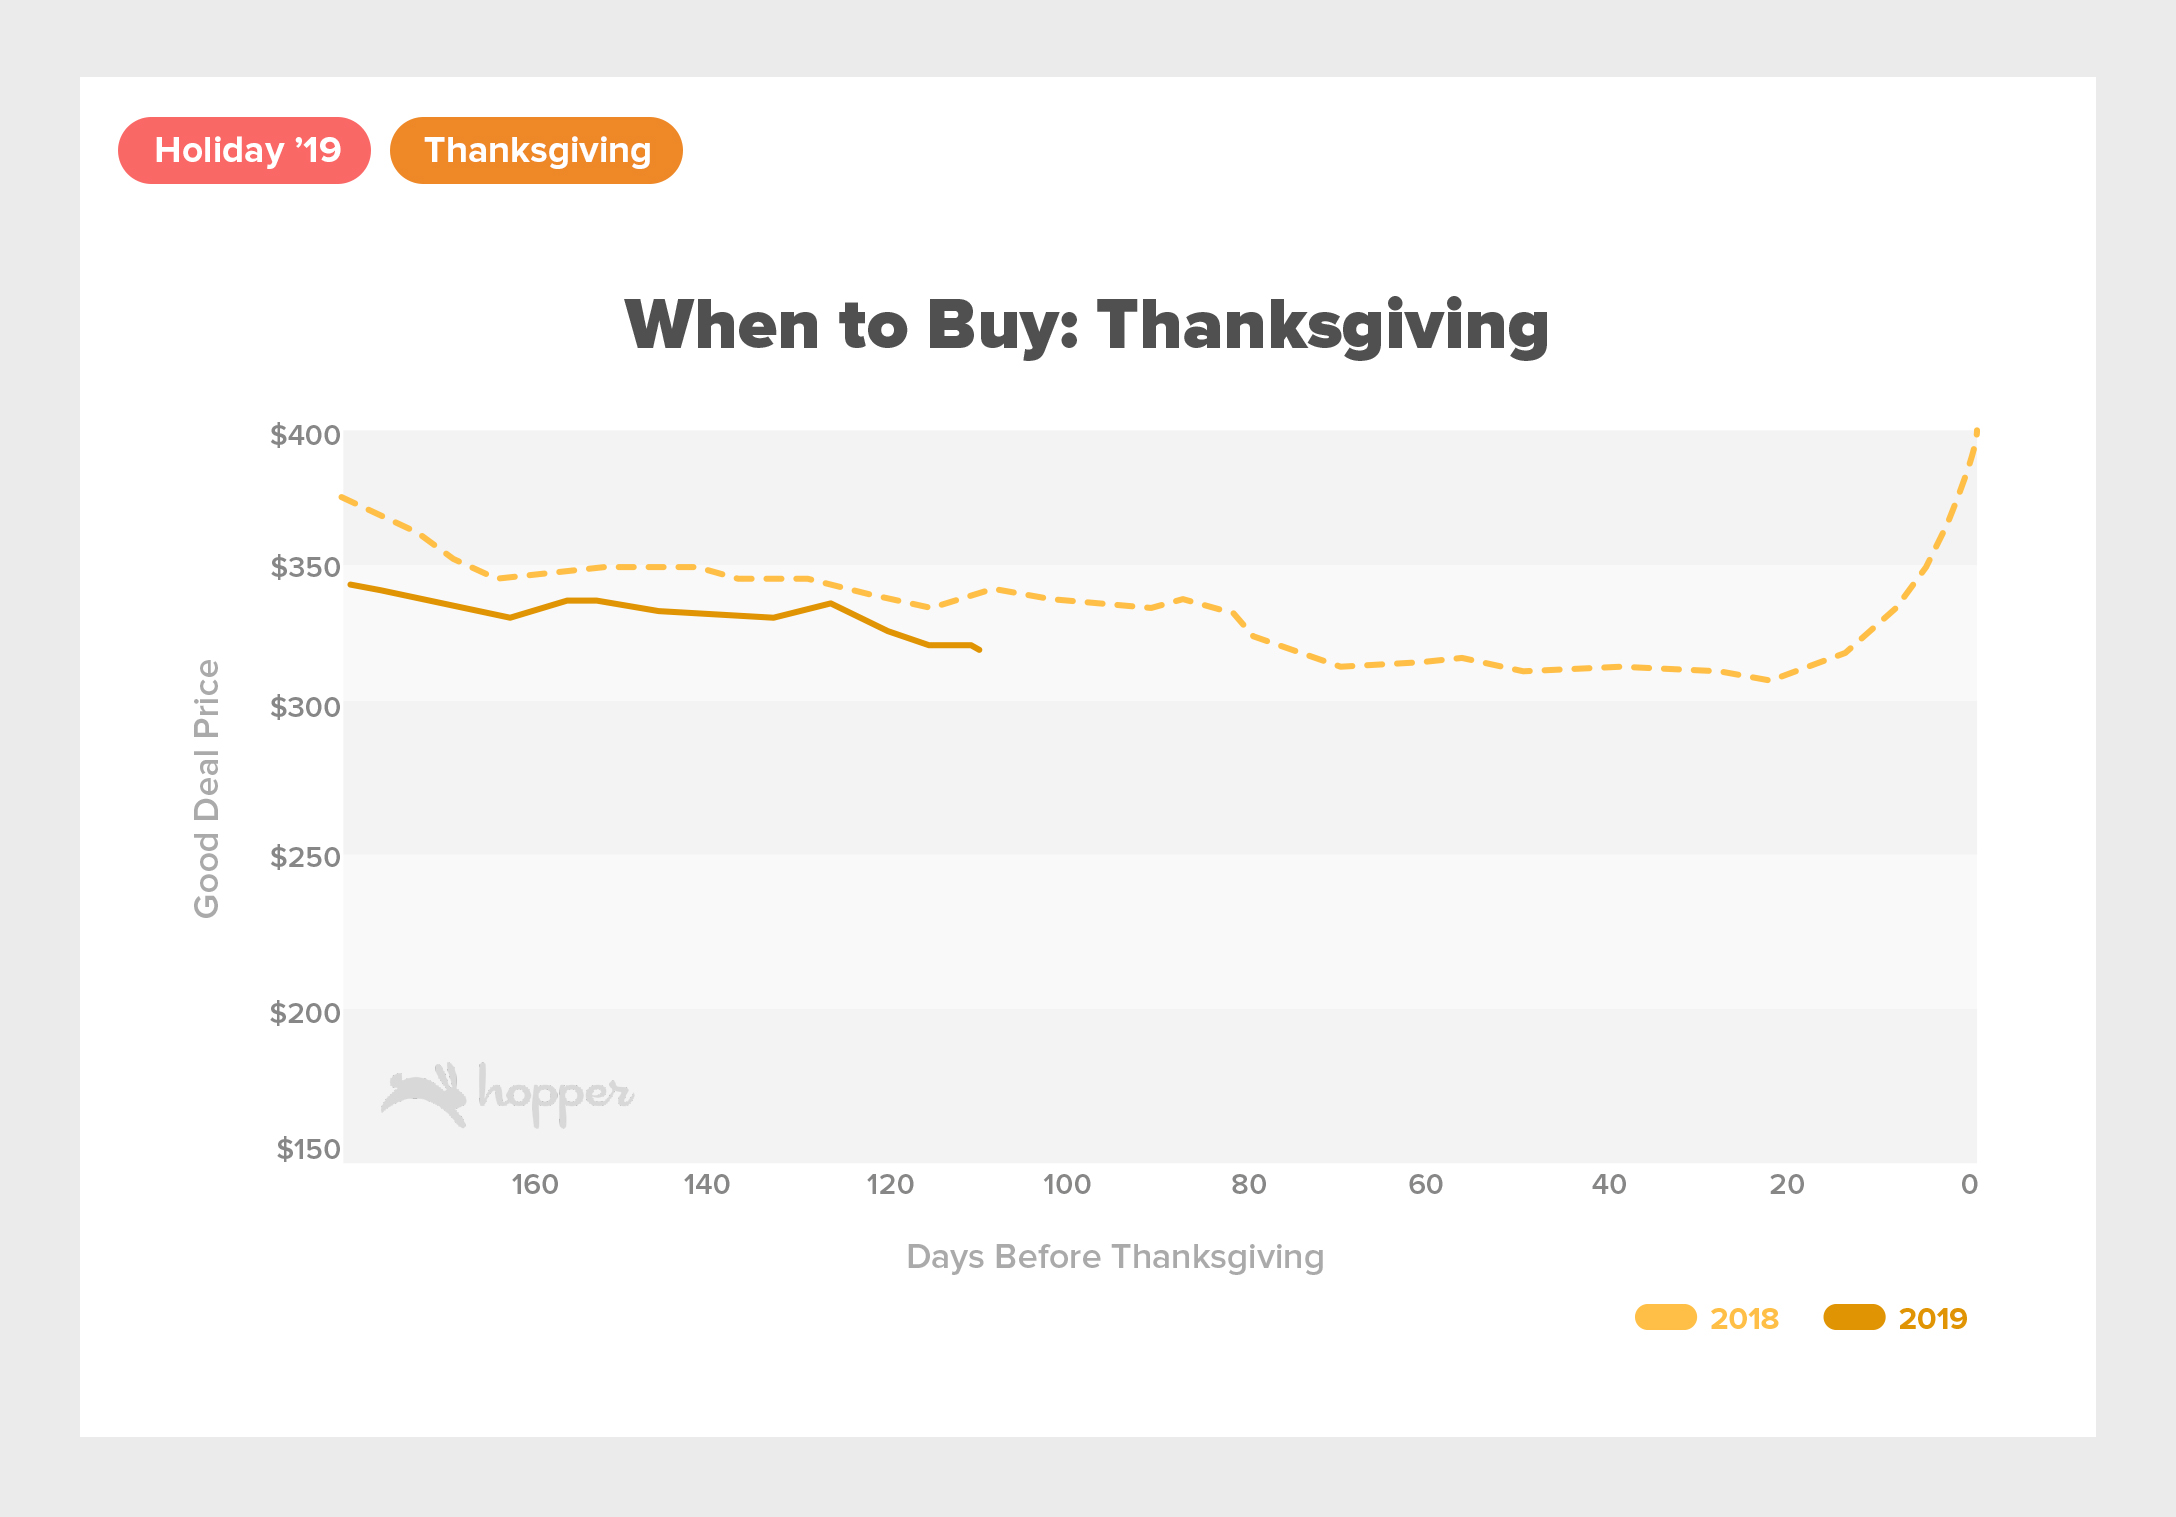 Holiday2019 PRGraphsThanksgiving When to Buy (1)